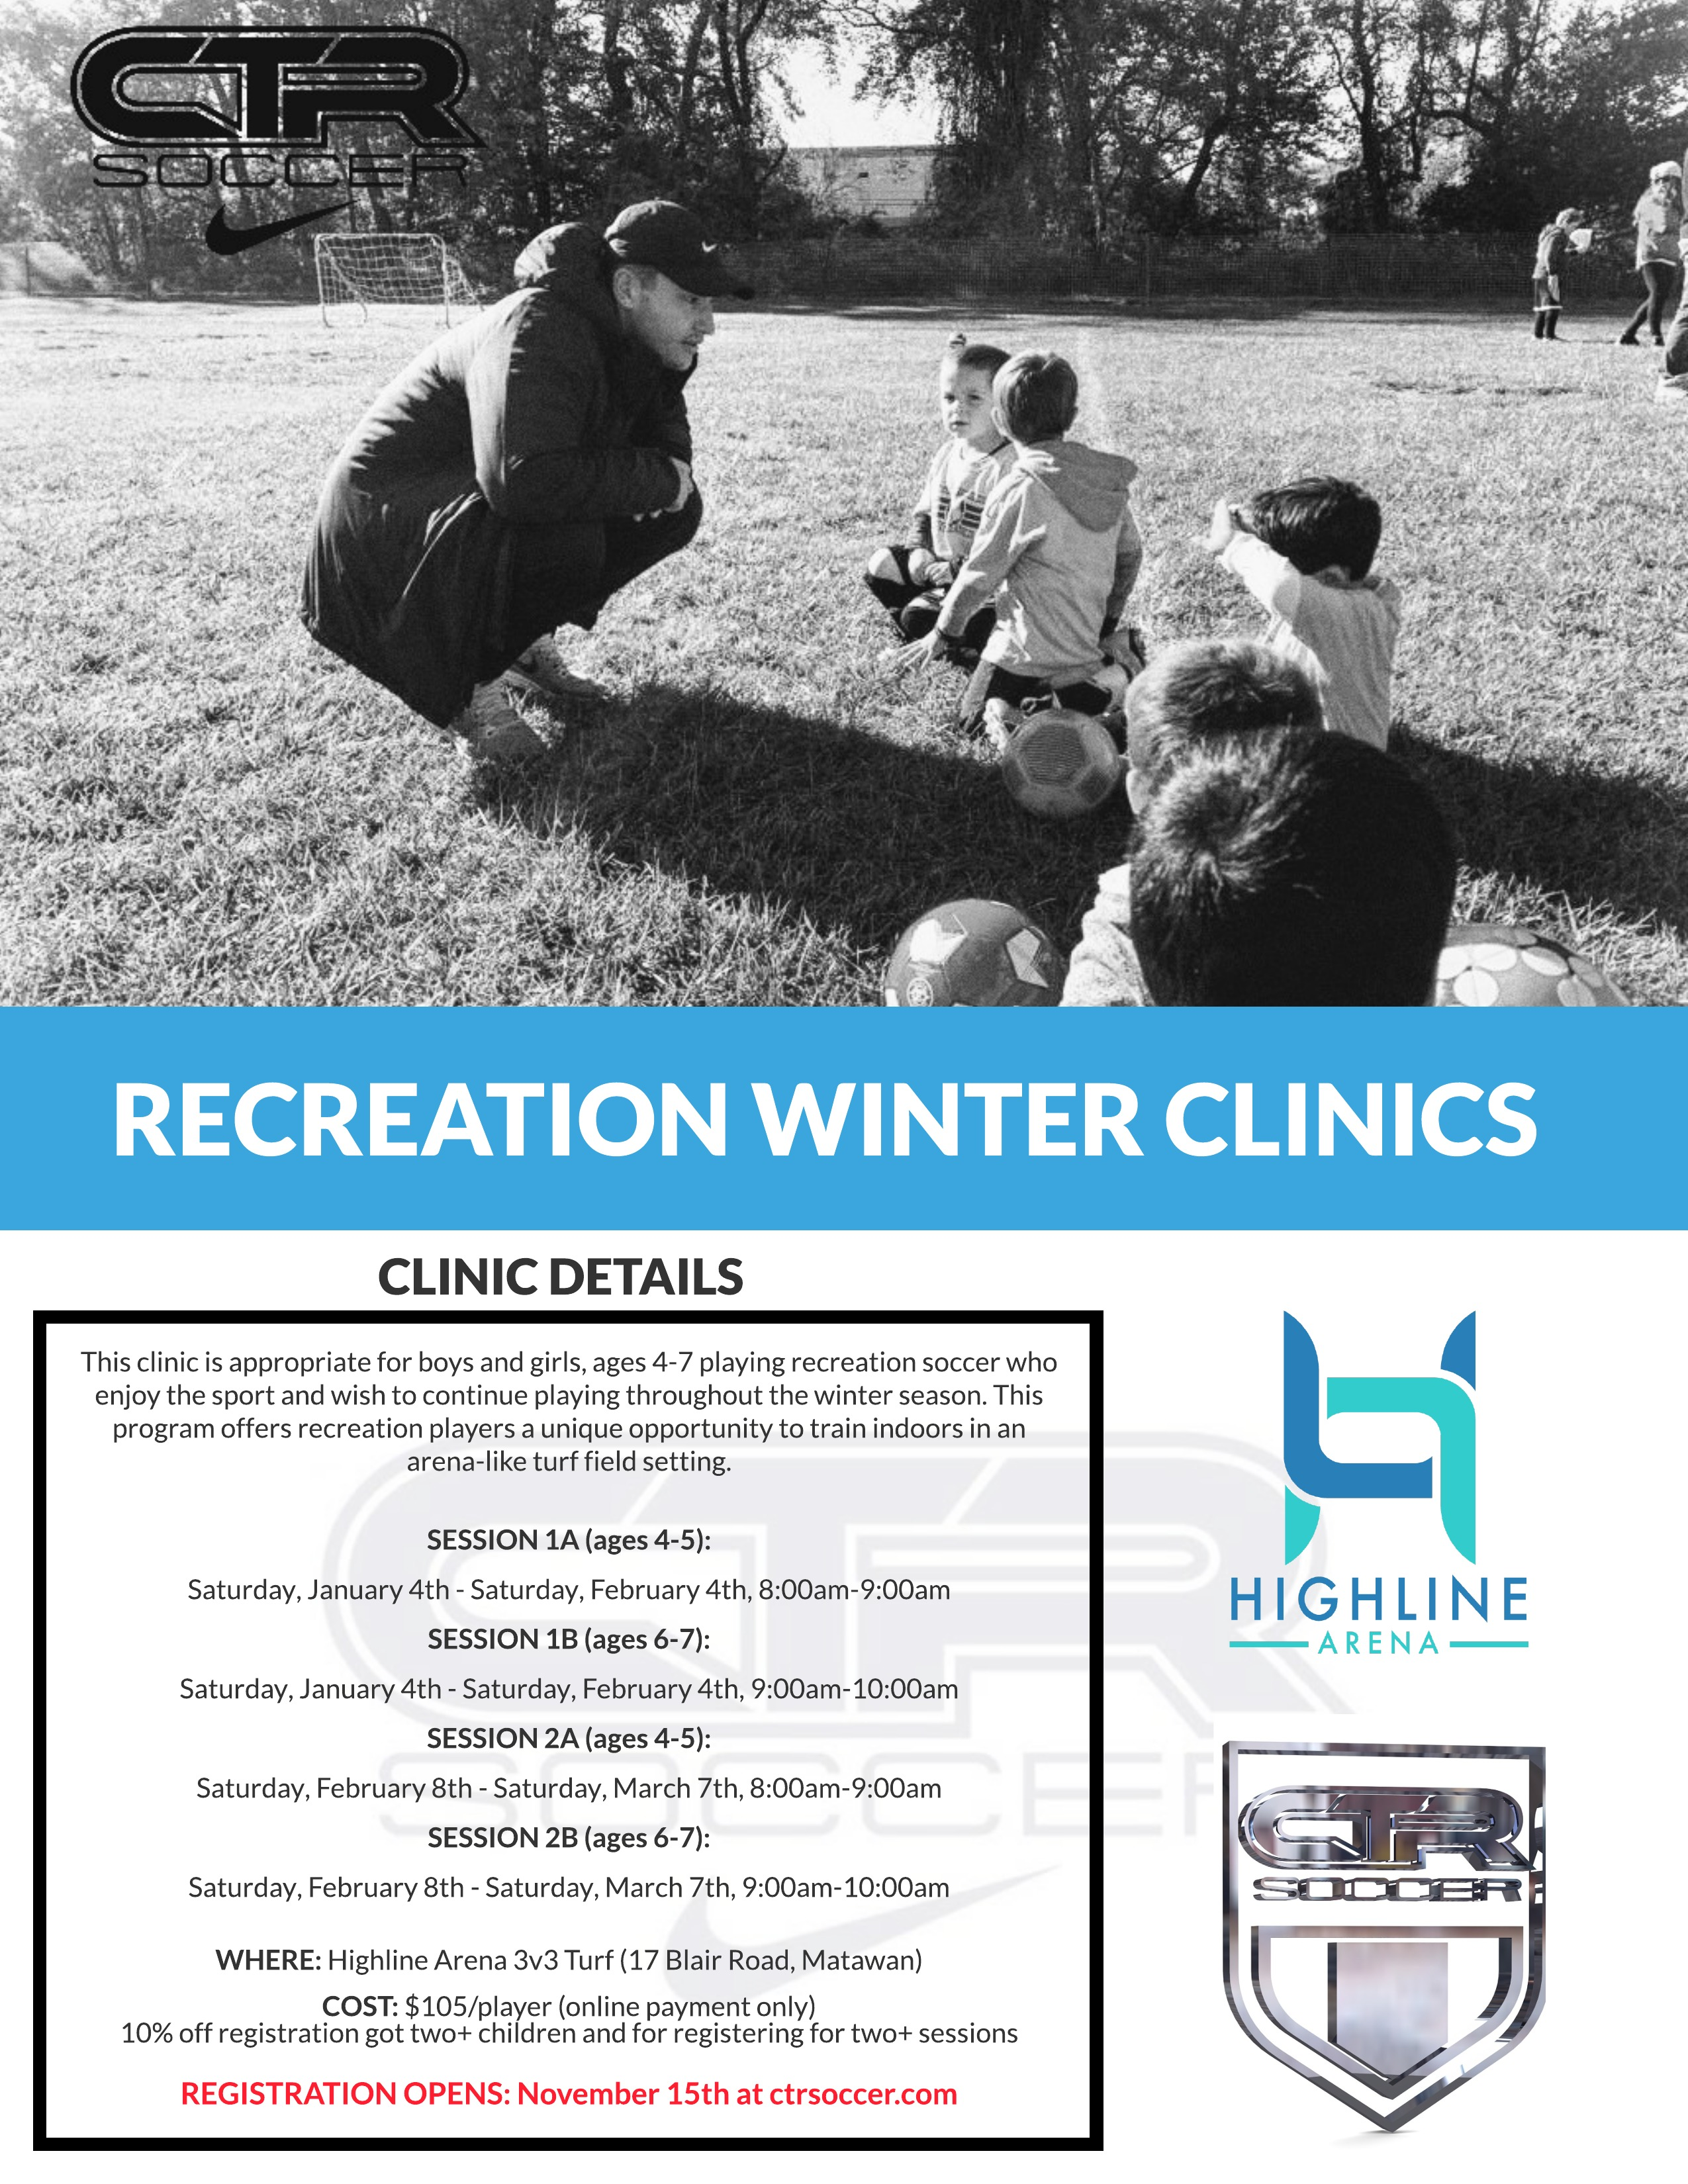 Recreation Winter Clinic with CTR Soccer at the Highline Arena